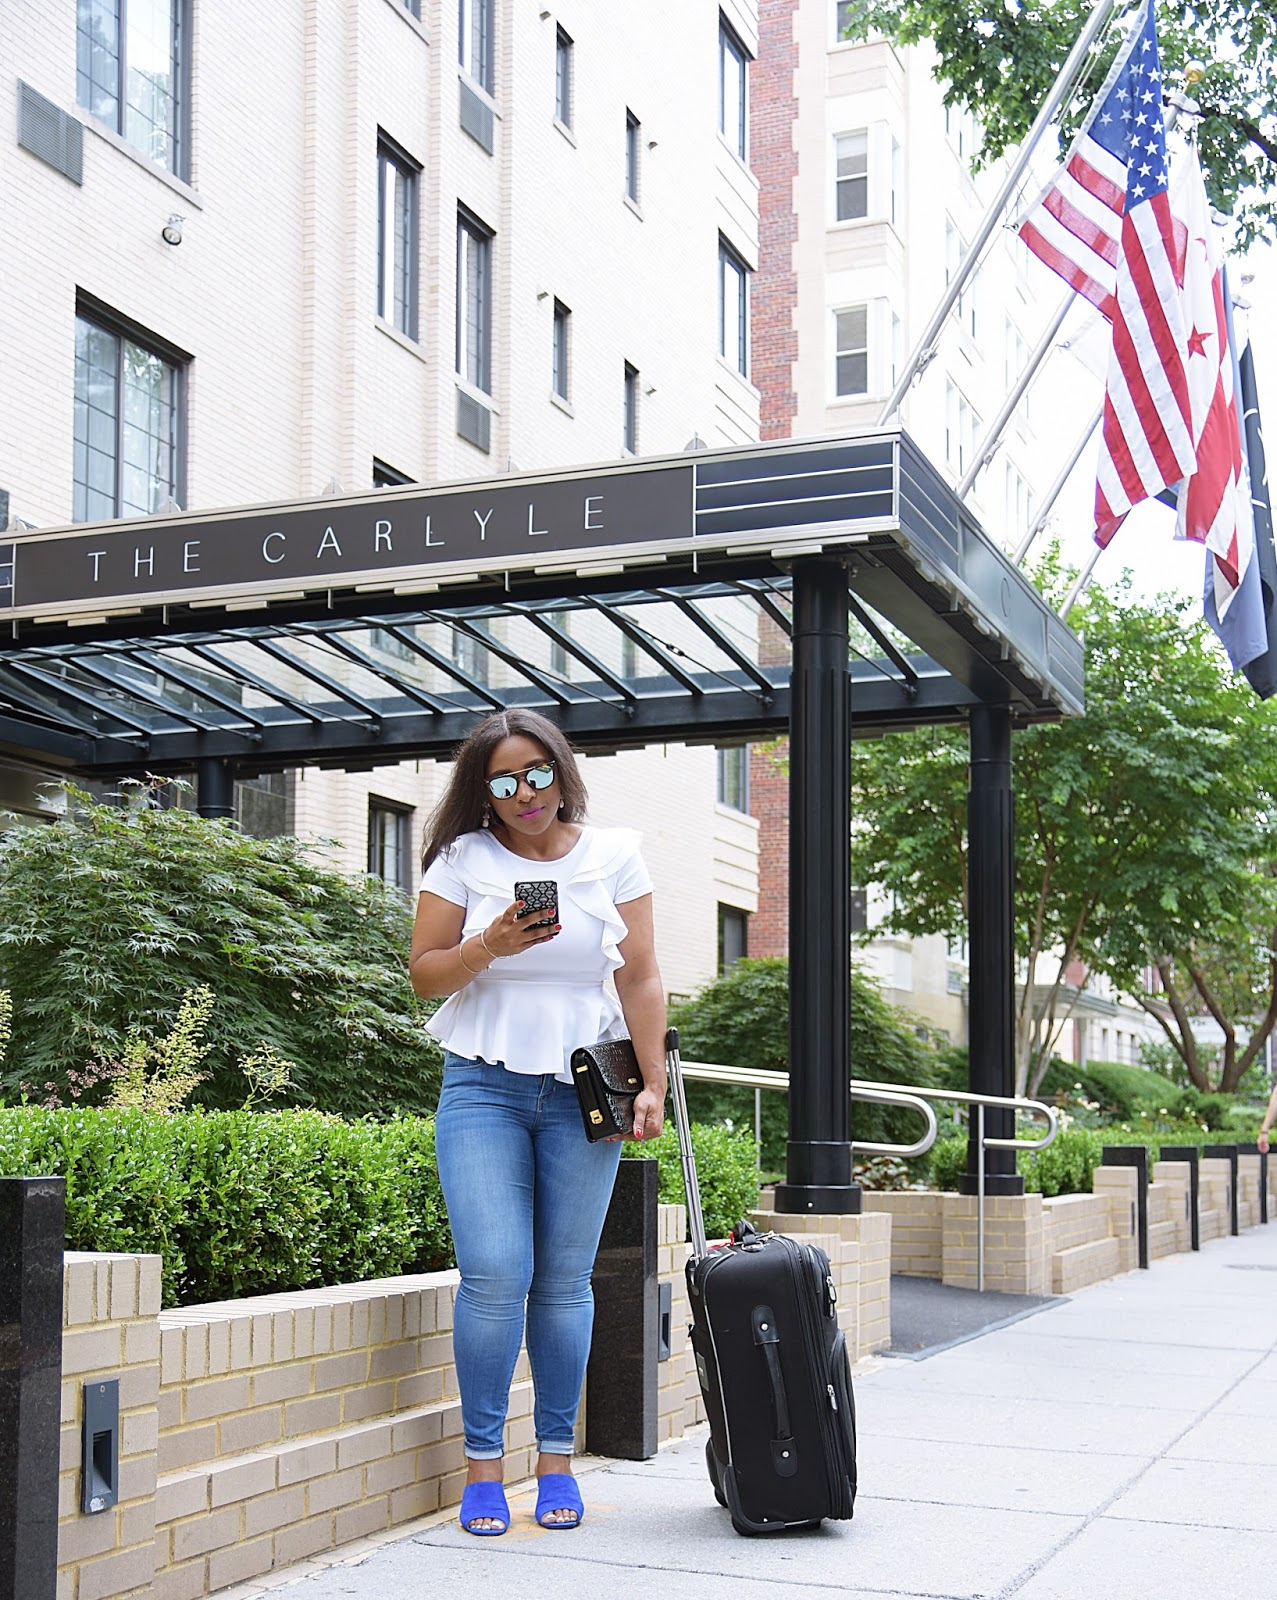 Staycation at The Carlyle Hotel DC, travel blogger, suitcase, hotel lobby, traveling, dc travels, hotels in dc